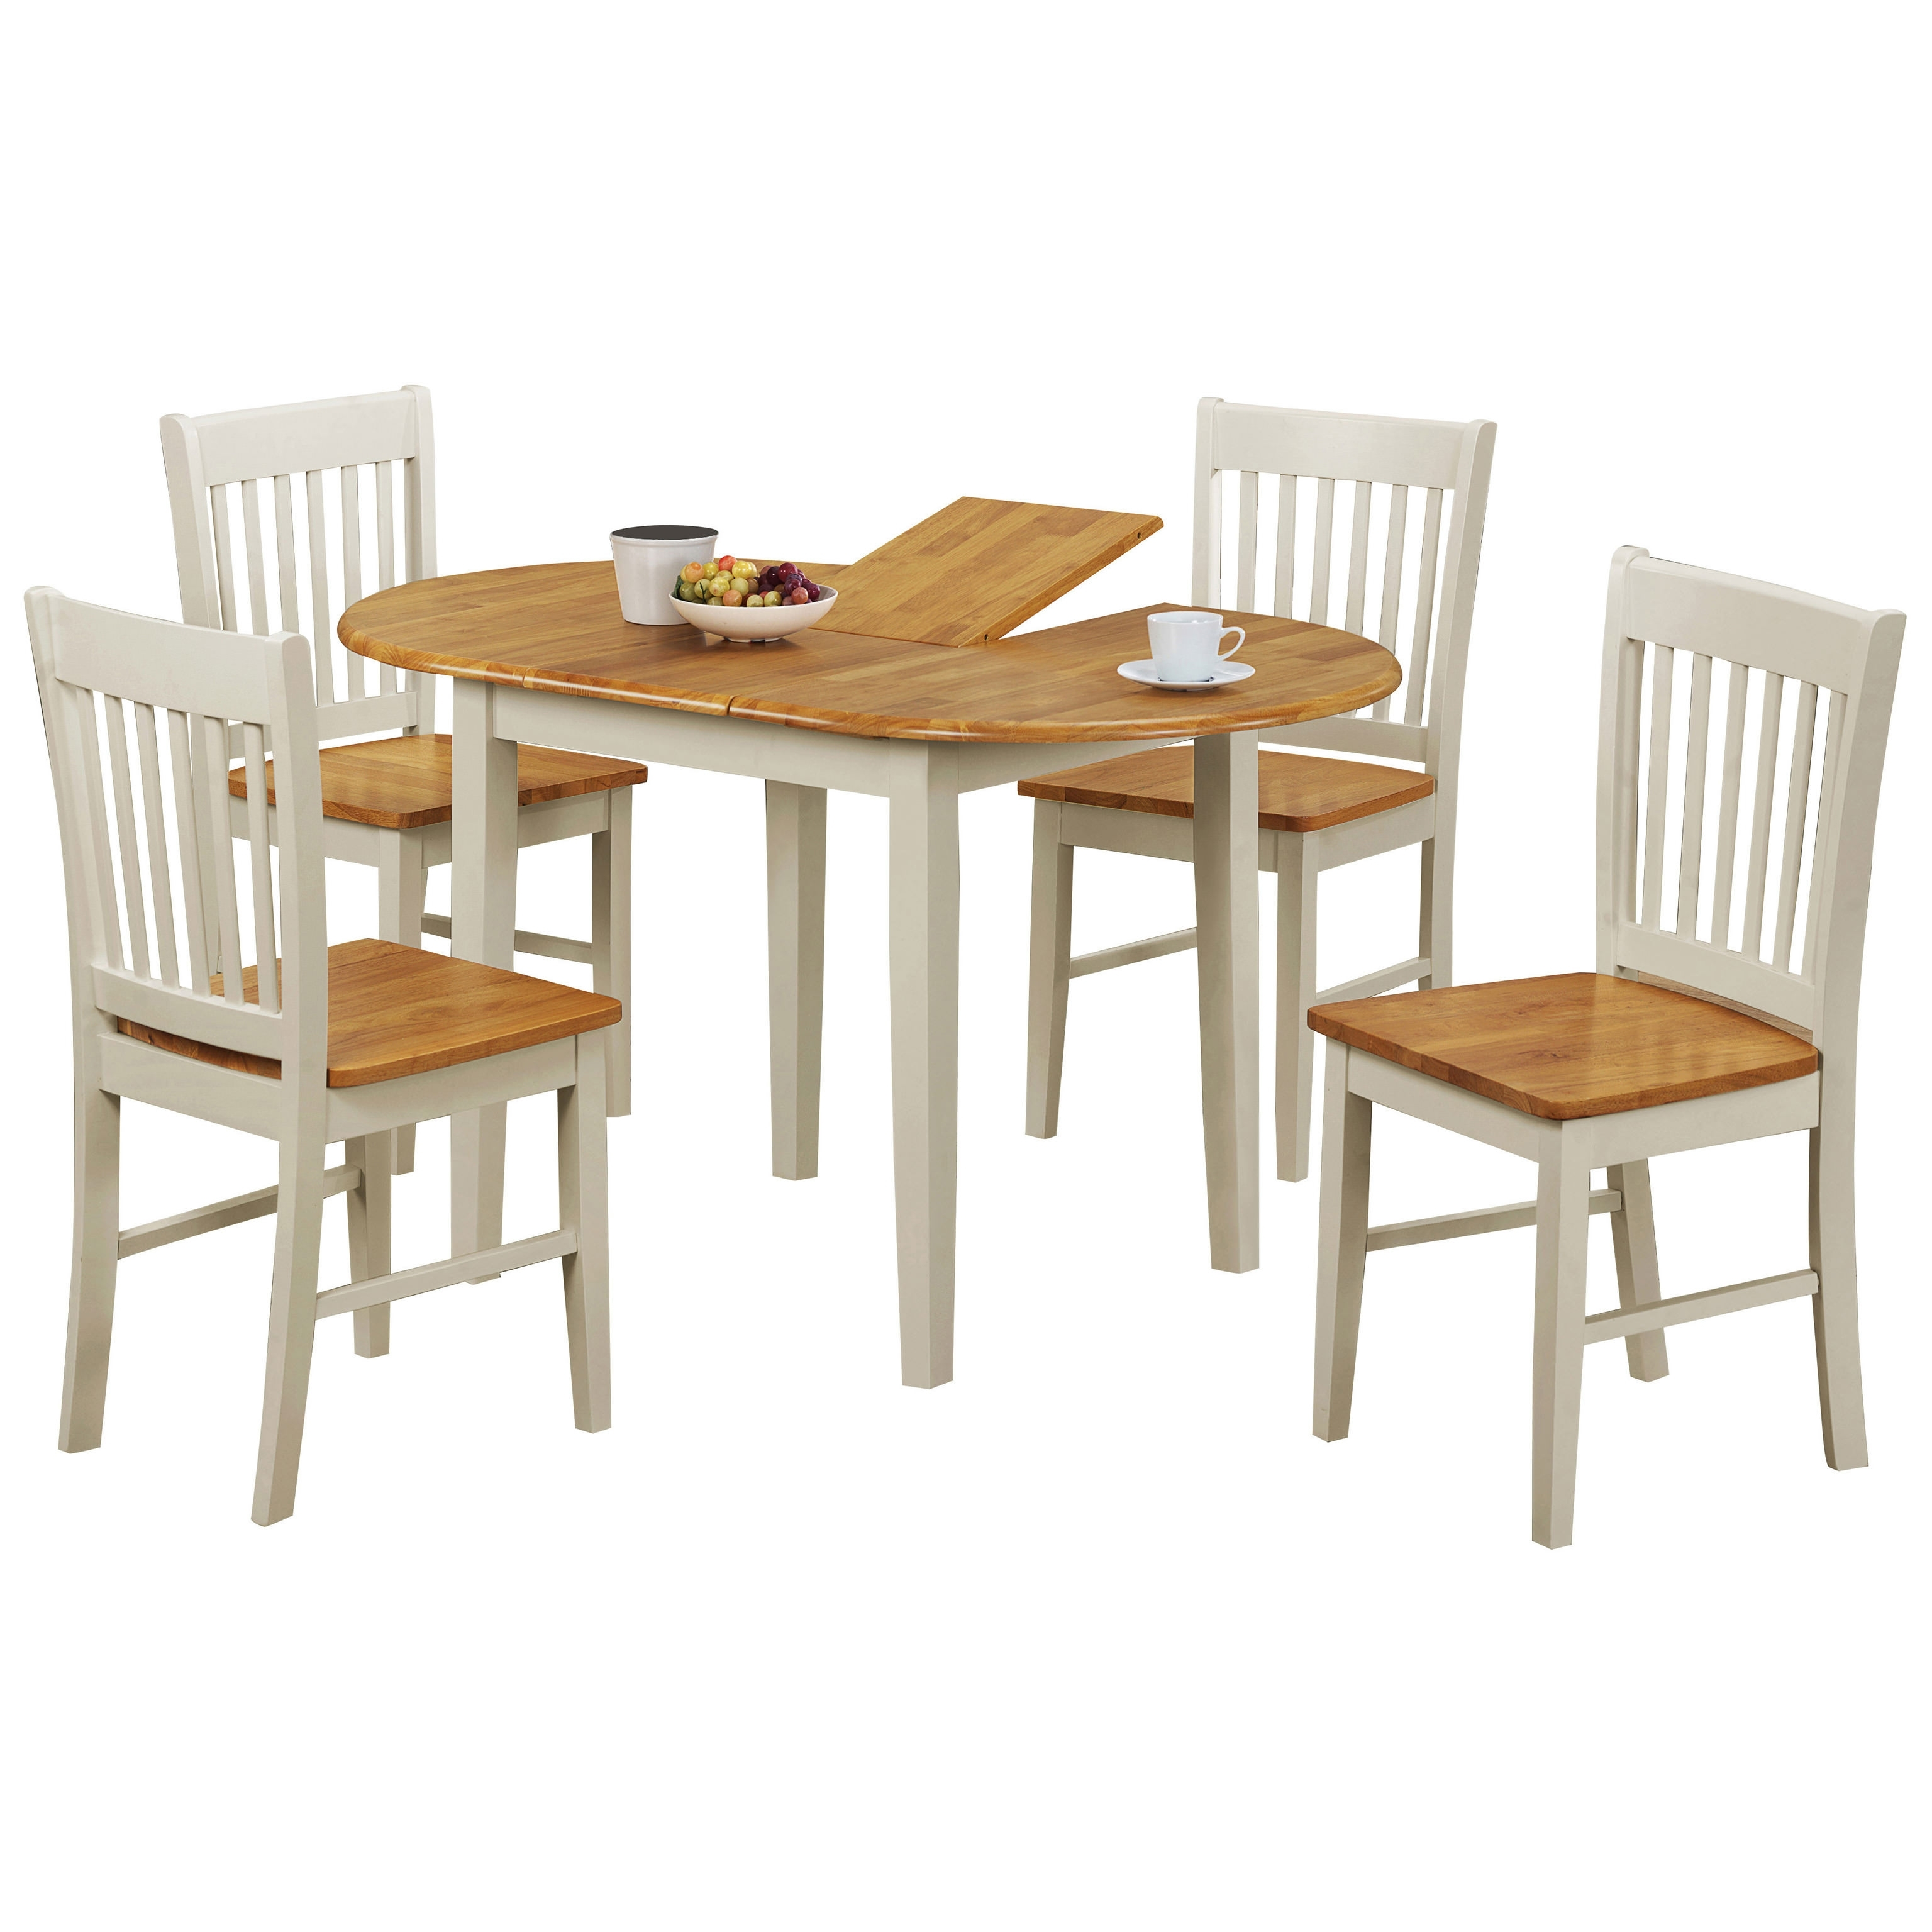 Well Known Oak & White Oval Extending Extendable Dining Table And Chair Set Regarding White Extendable Dining Tables And Chairs (View 17 of 25)